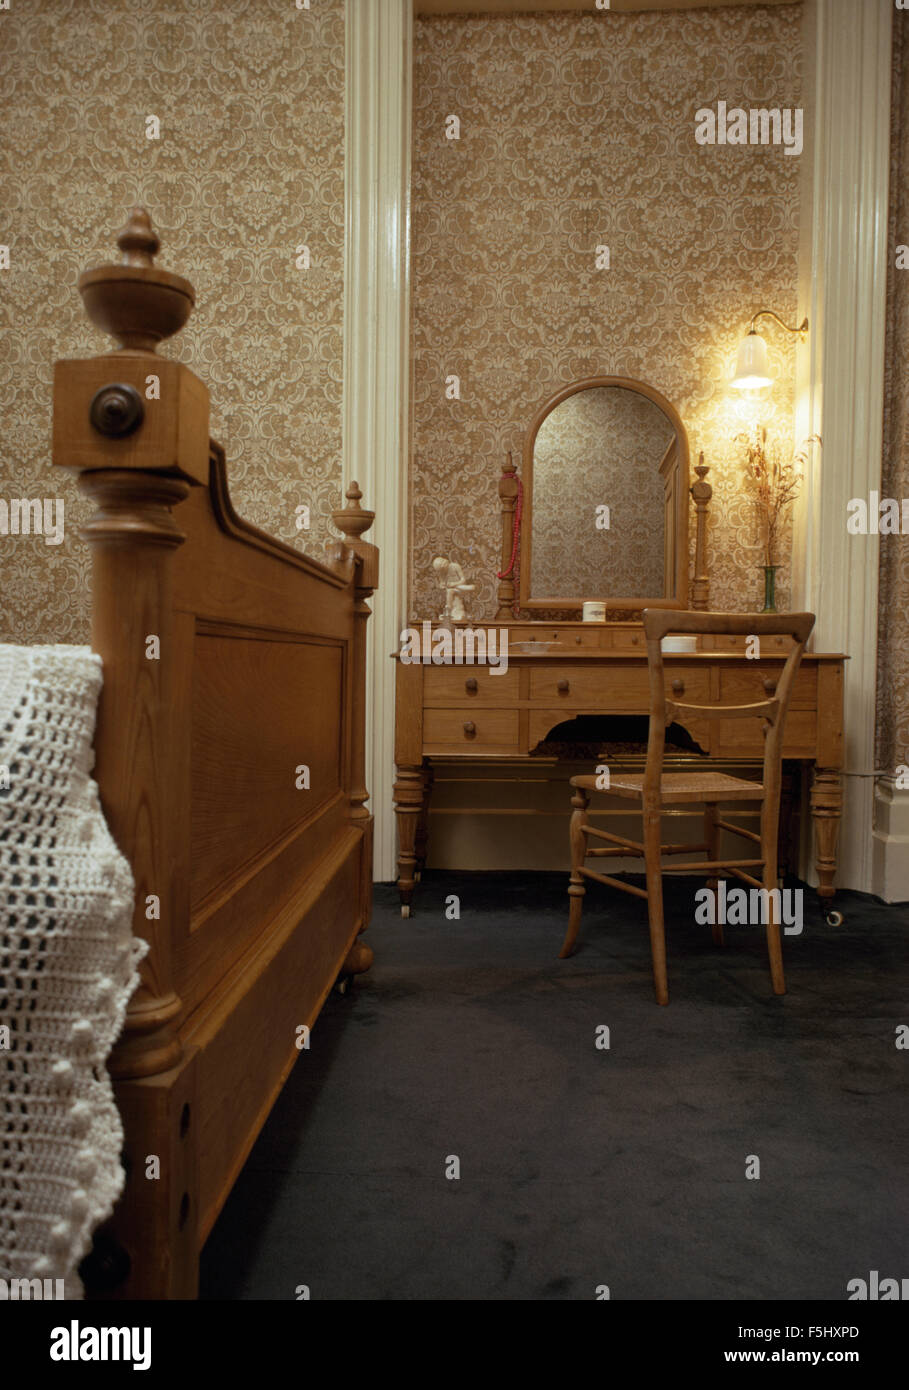 Muted wallpaper and old fashioned dressing table in seventies bedroom - Stock Image